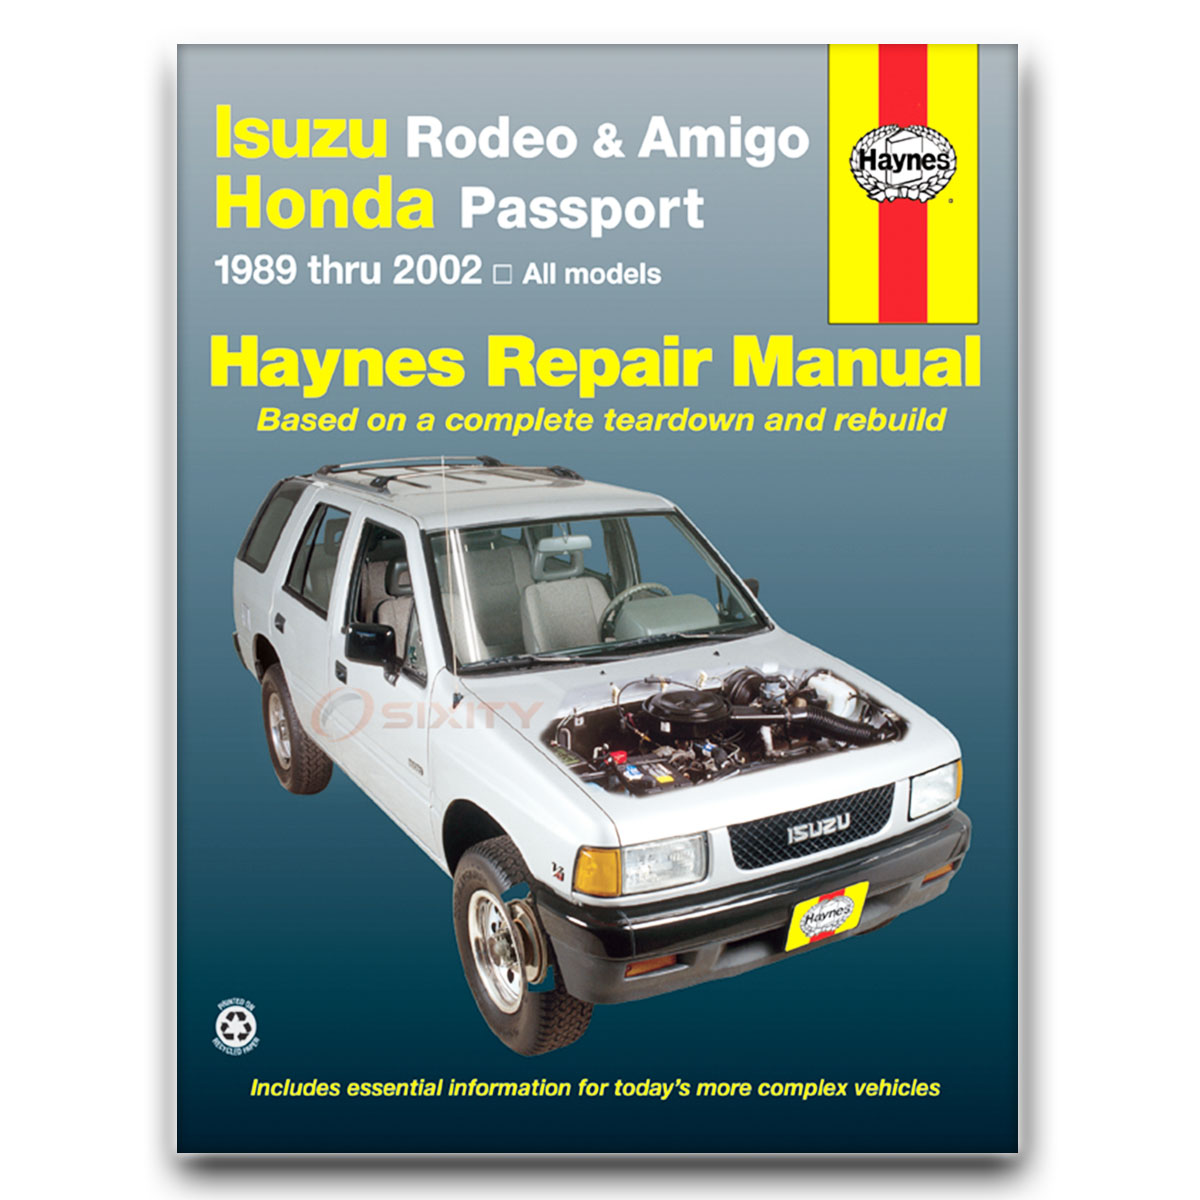 isuzu rodeo haynes repair manual s v6 ls lse xs shop service garage rh ebay com 1998 isuzu amigo repair manual 1998 holden rodeo service manual